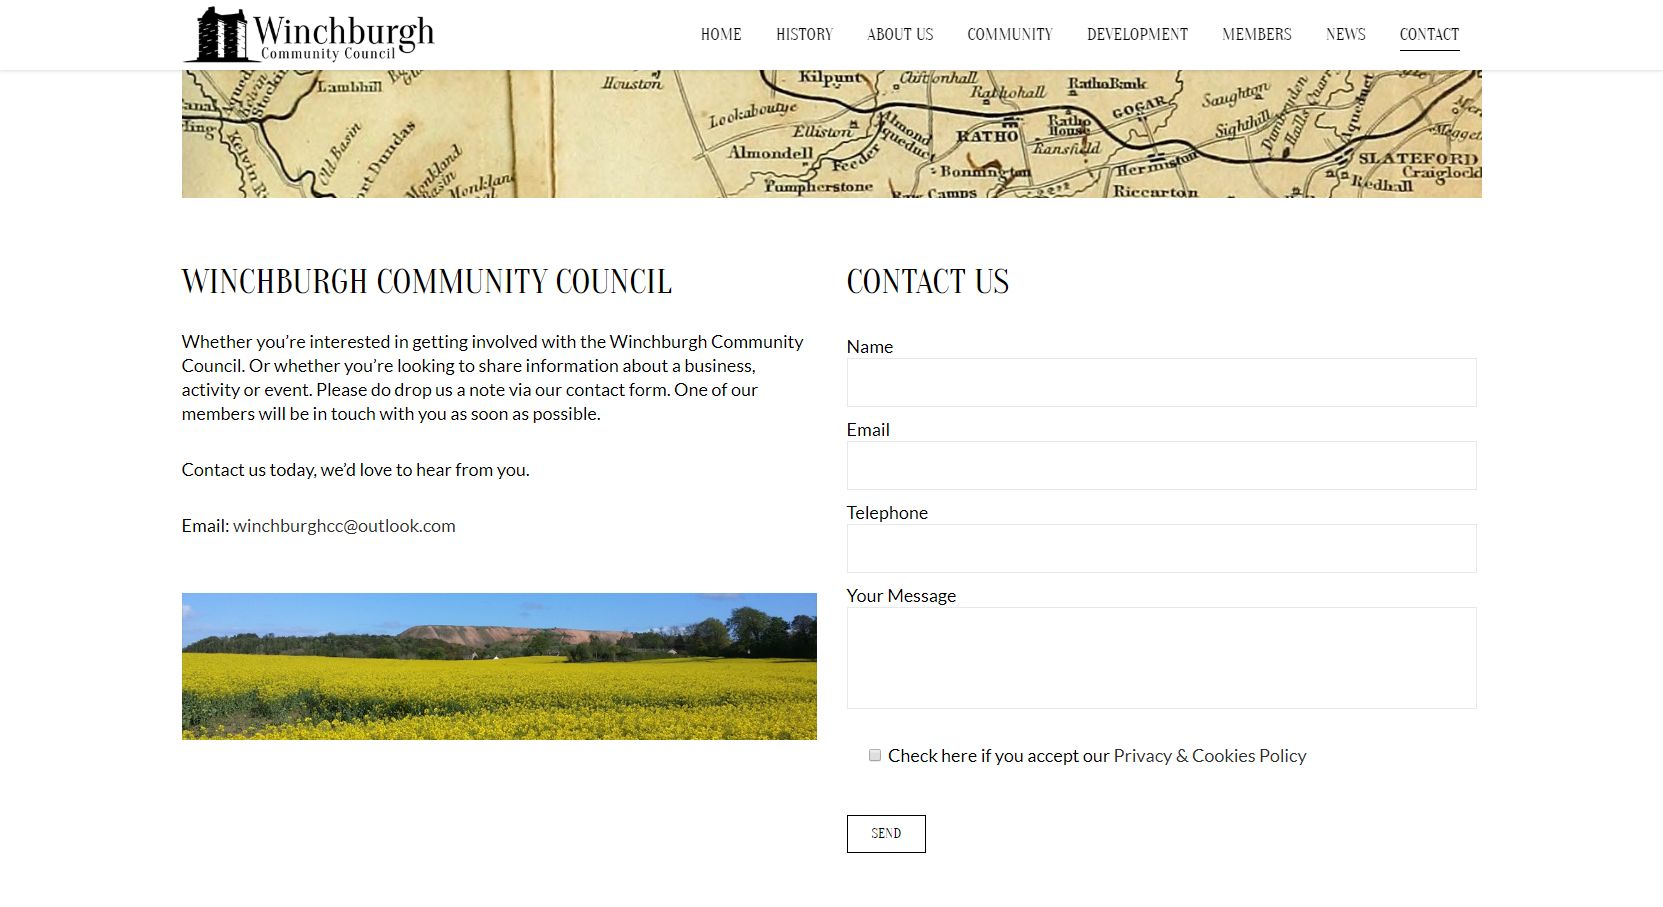 Winchburgh Community Council Development Contact Form